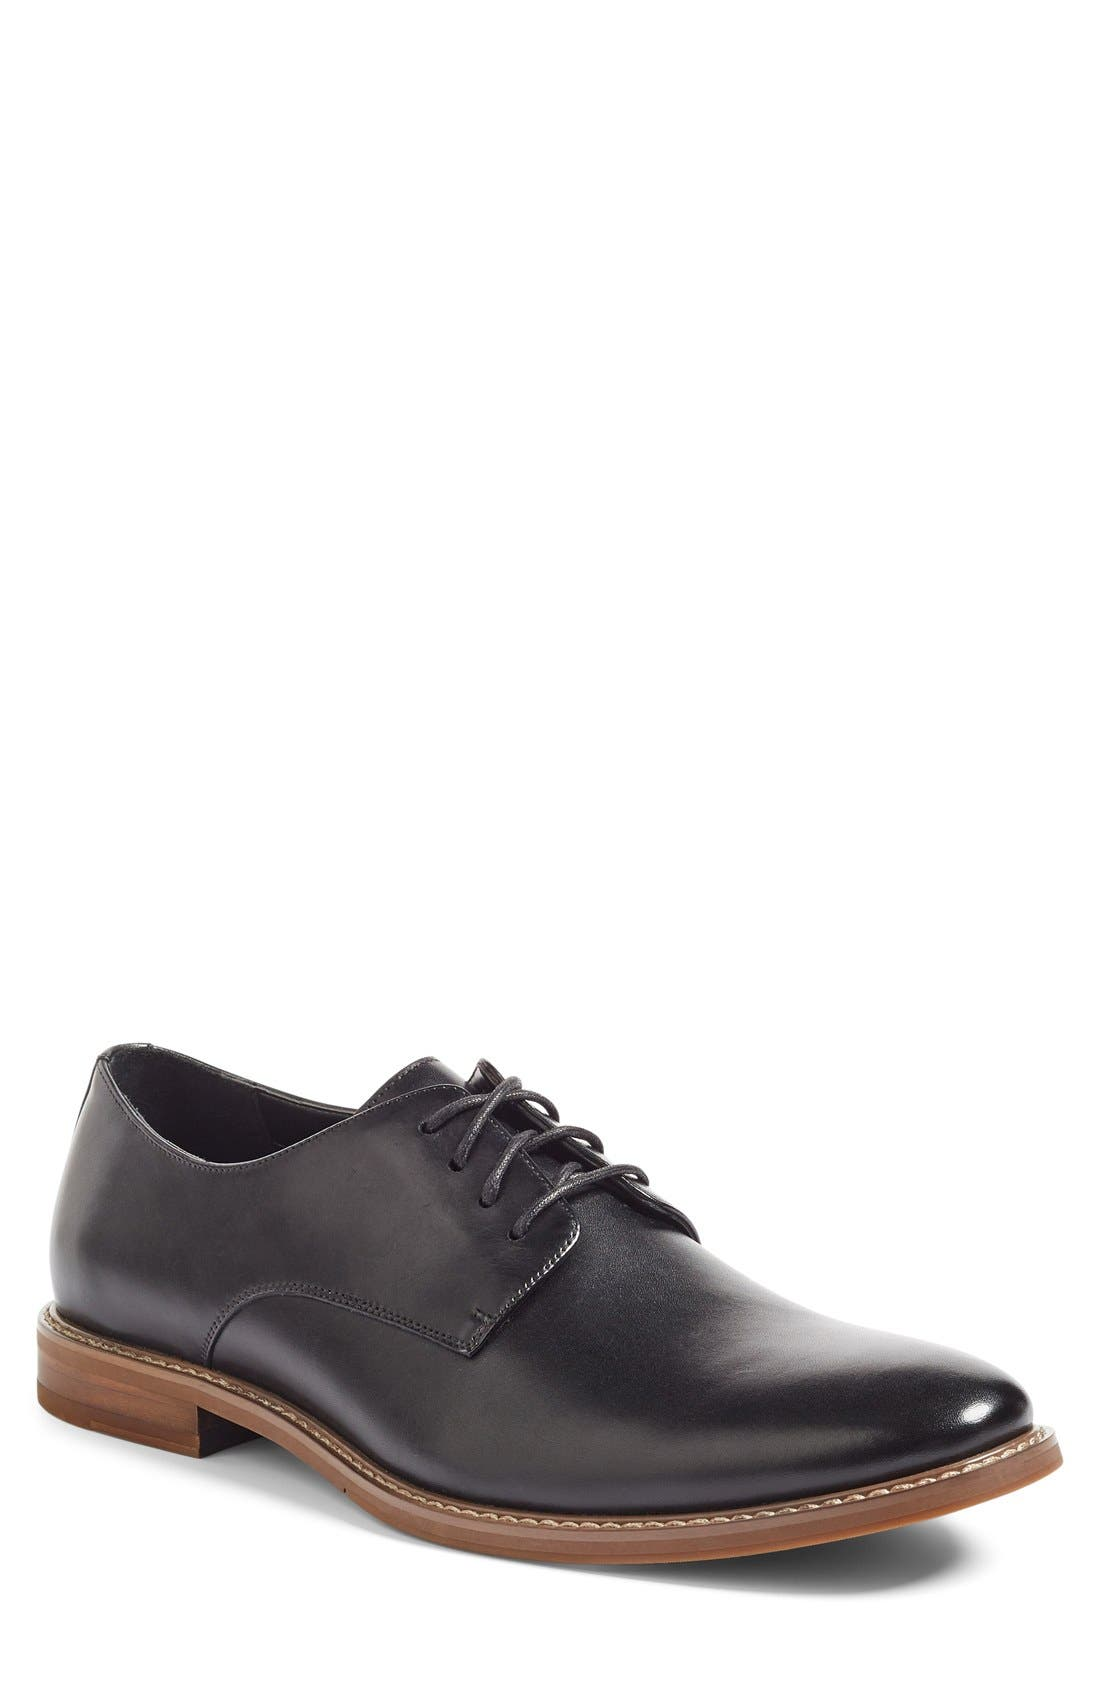 Everett Plain Toe Derby,                         Main,                         color, BLACK LEATHER